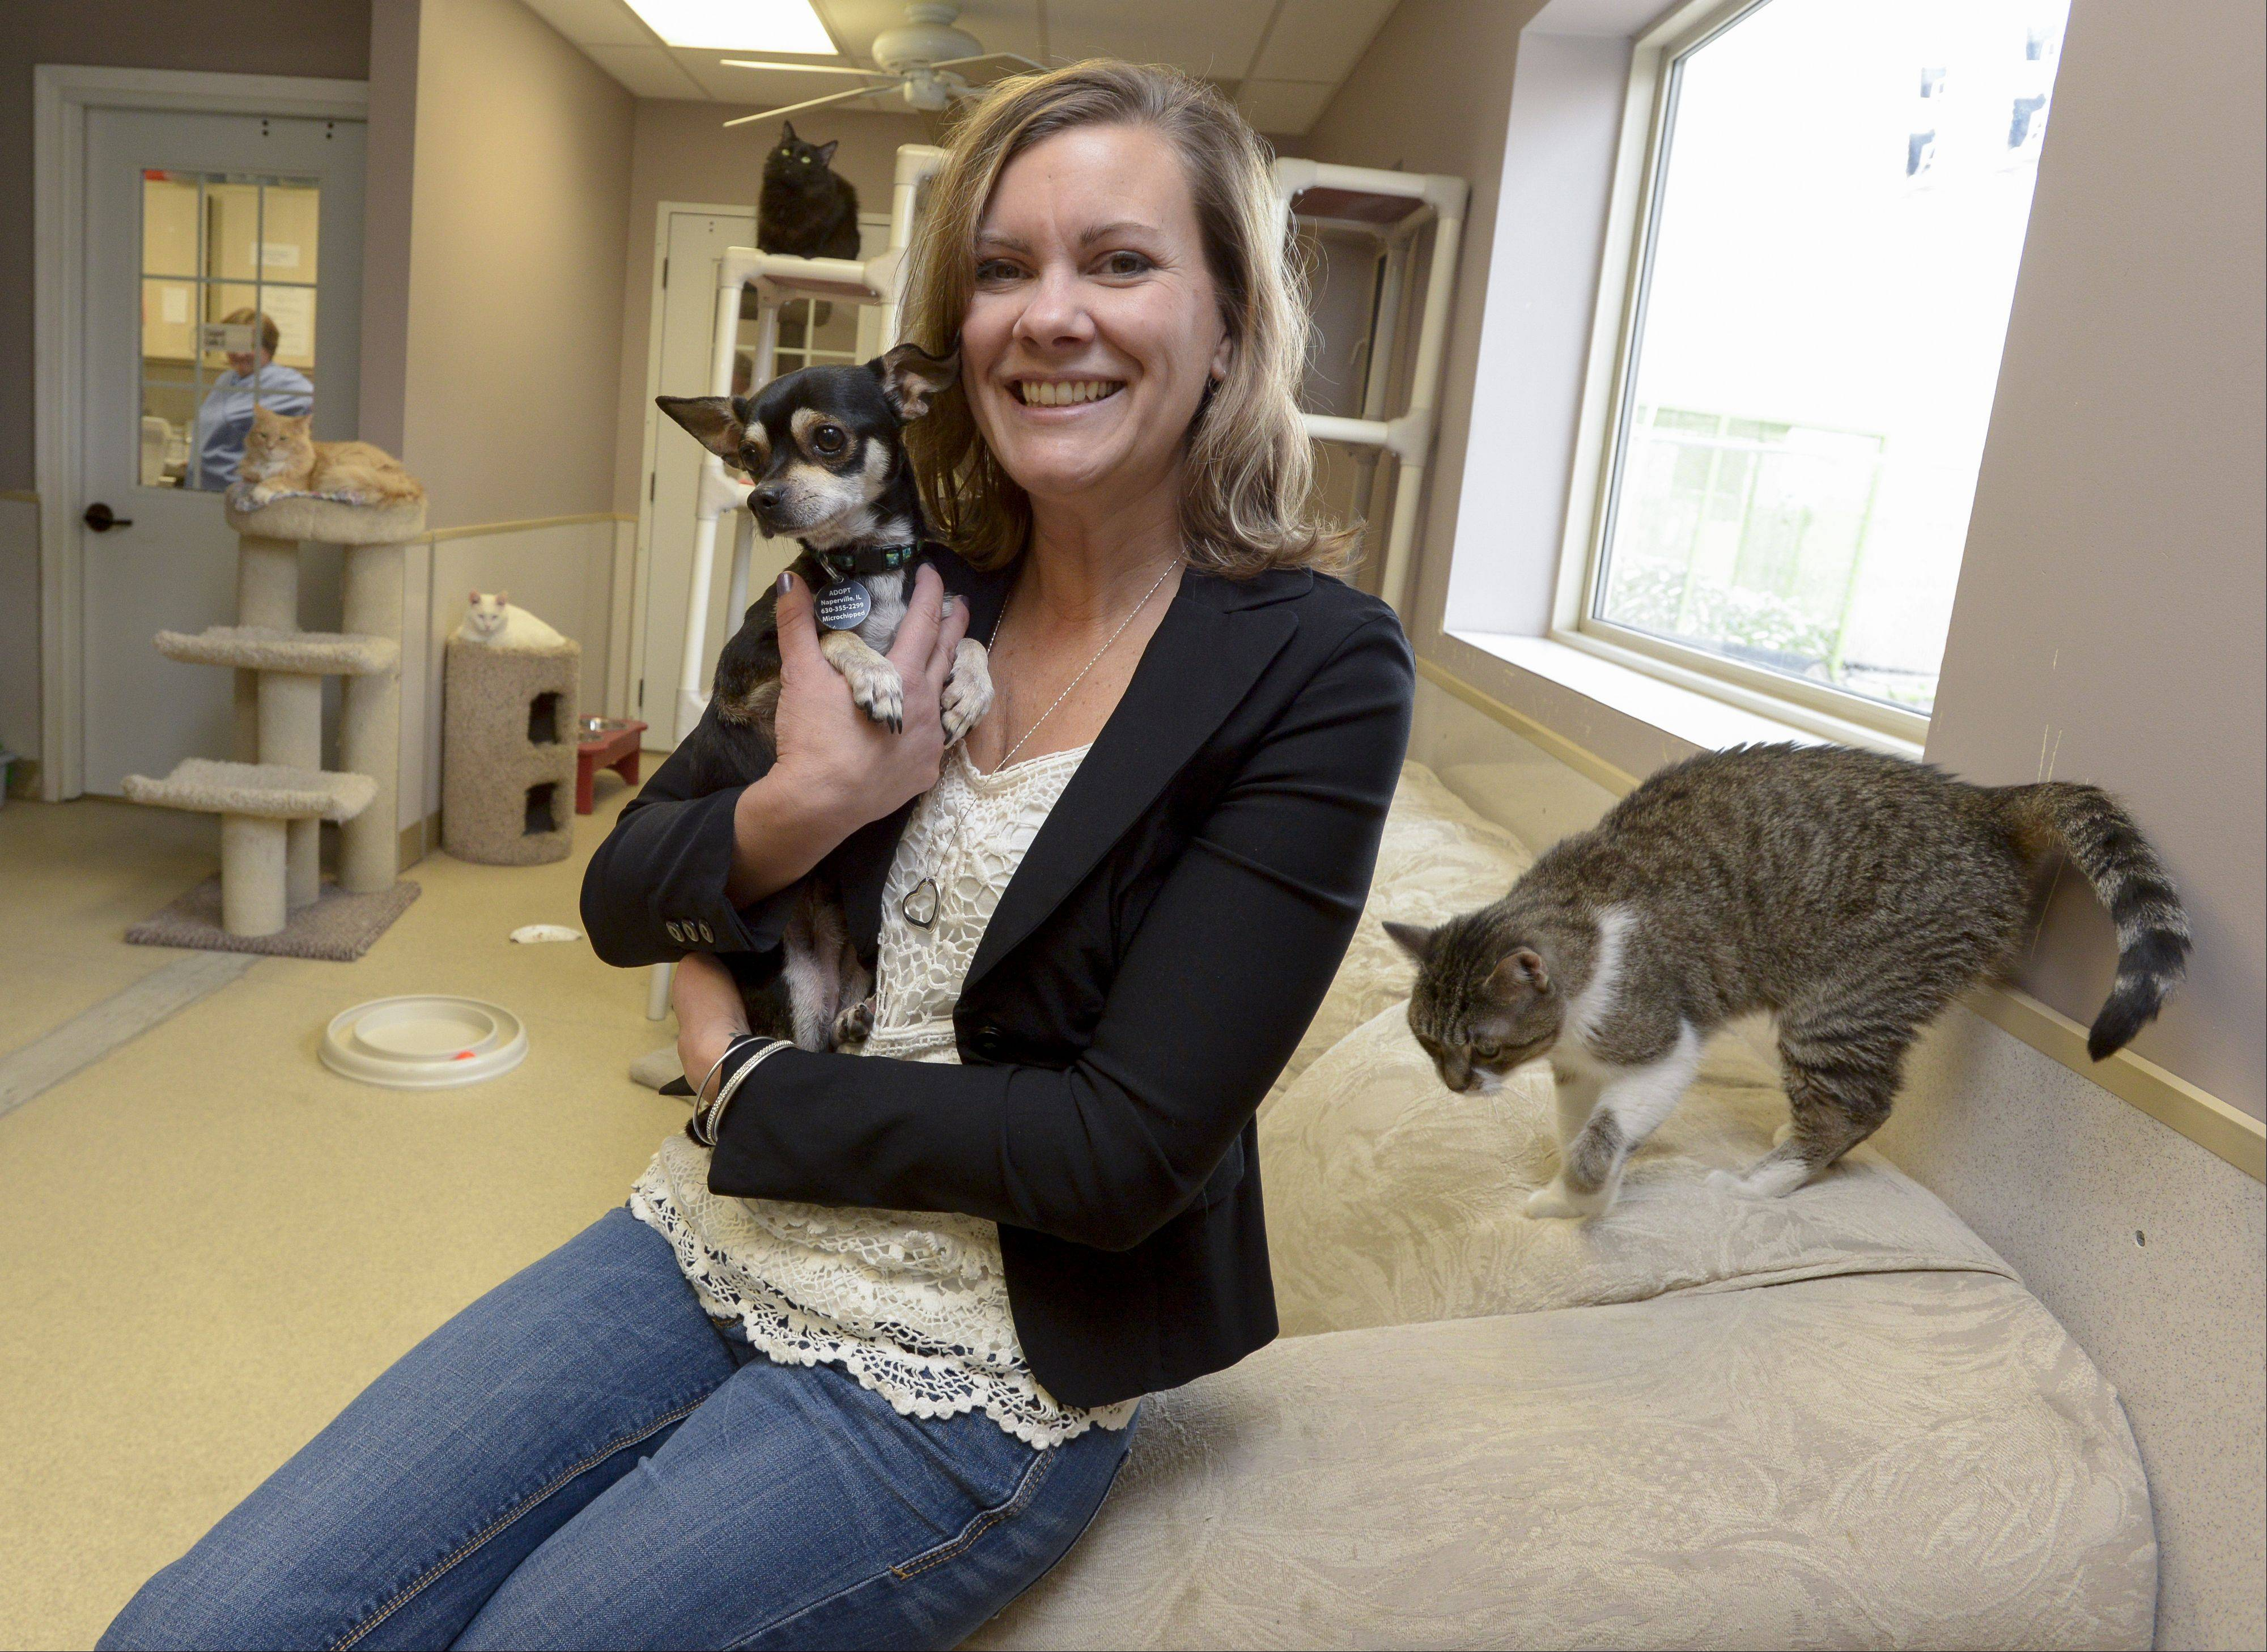 Chris Stirn is the new executive director of the ADOPT pet shelter in Naperville.